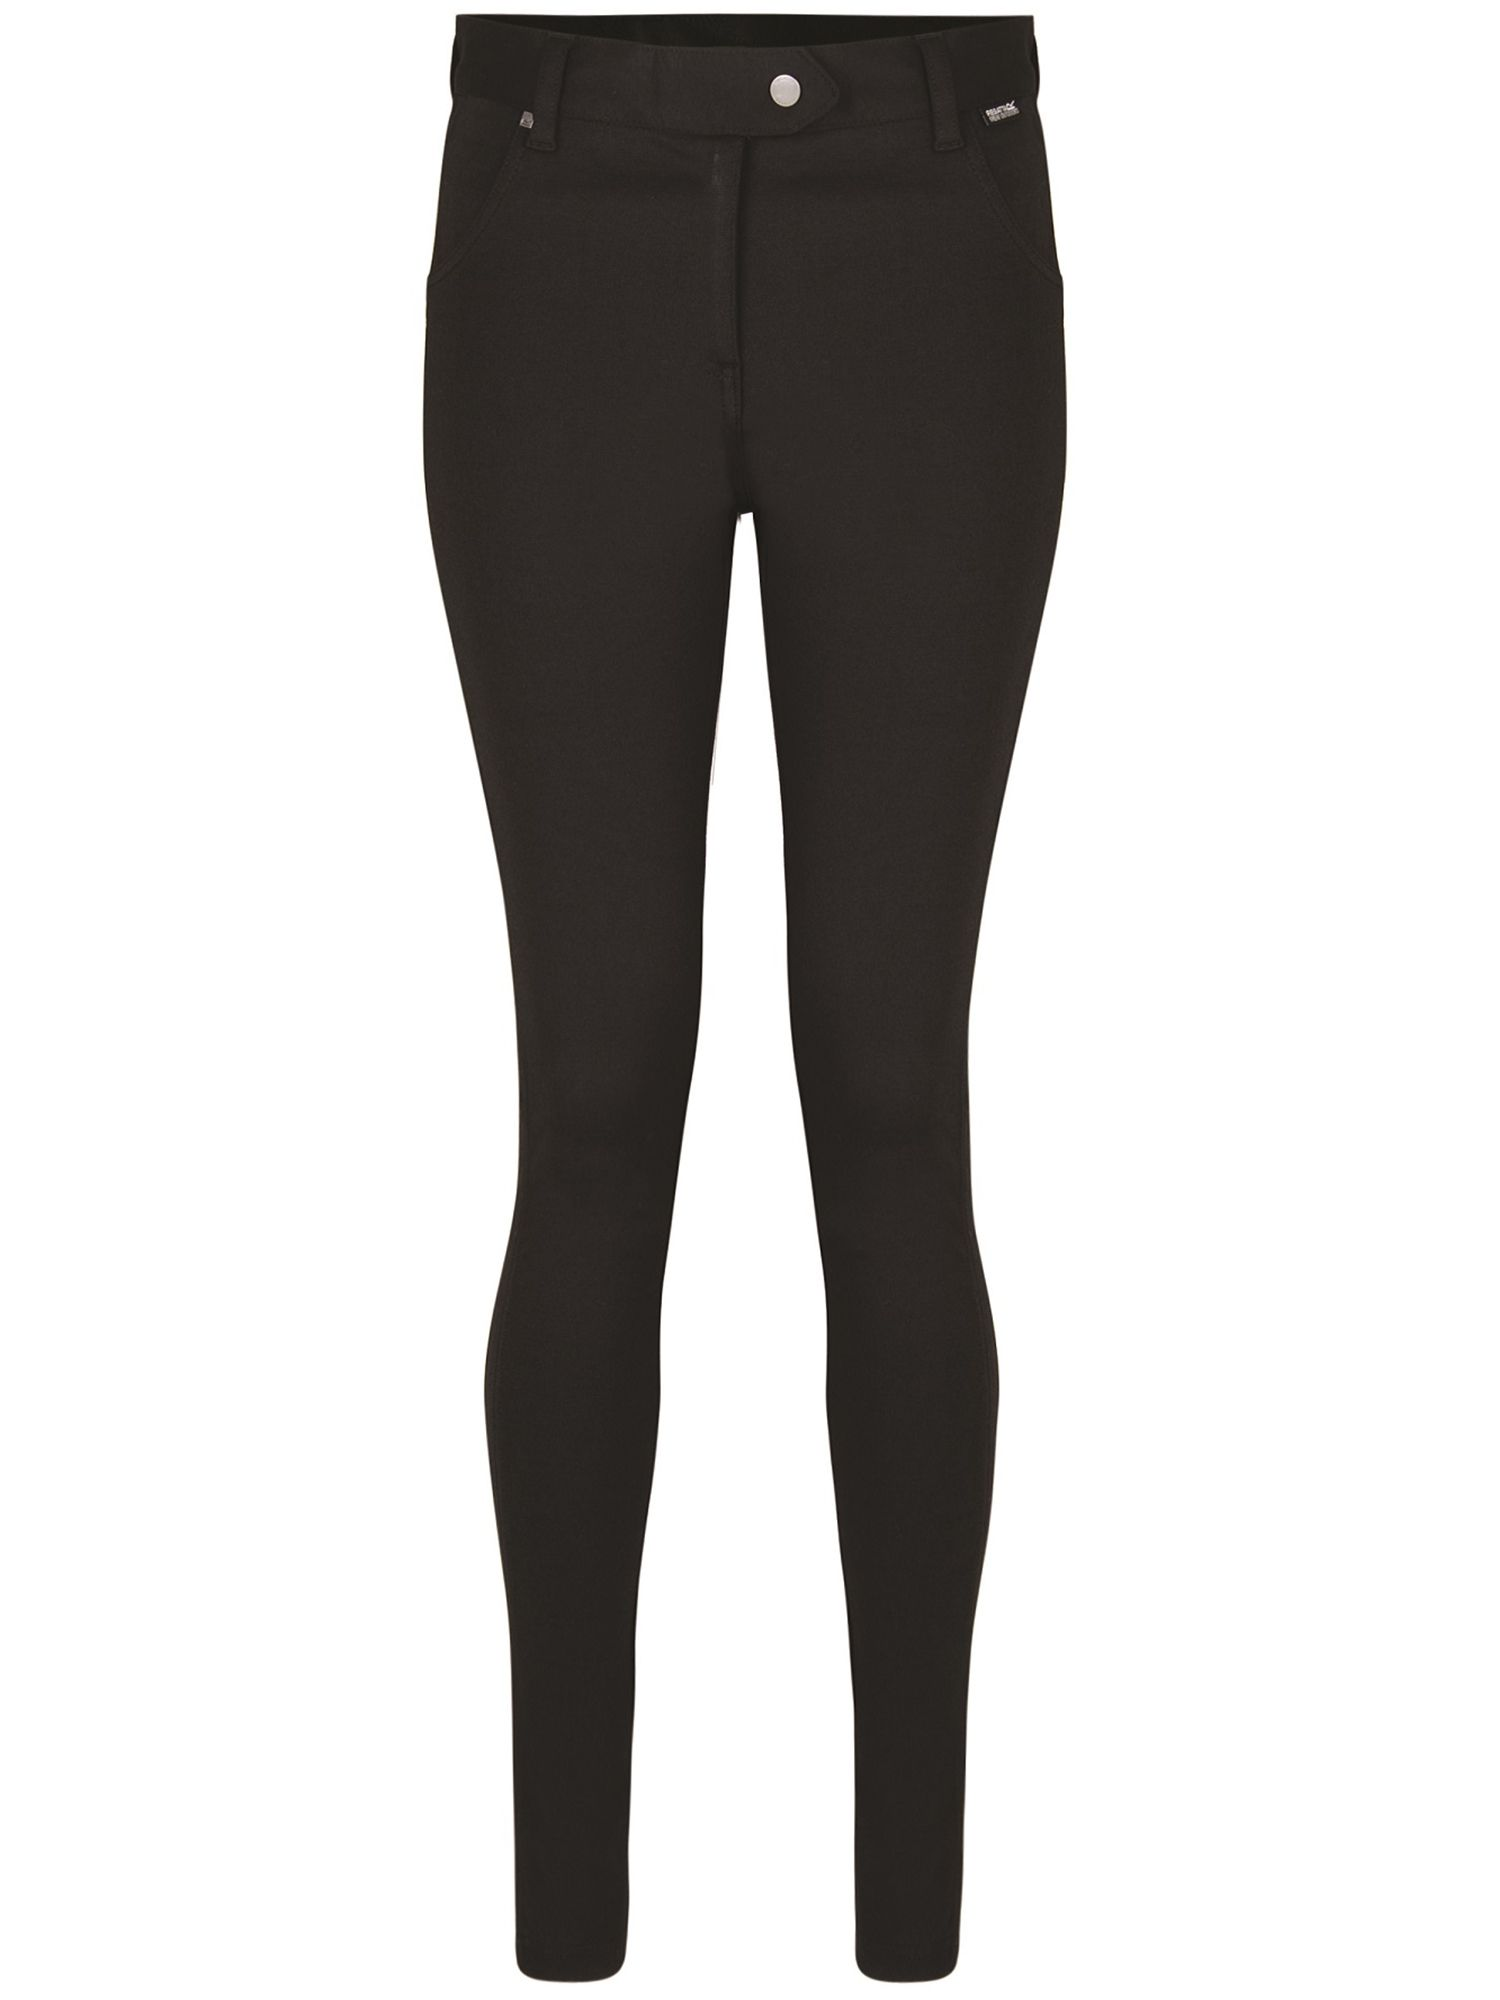 Regatta Seren Treggings, Black